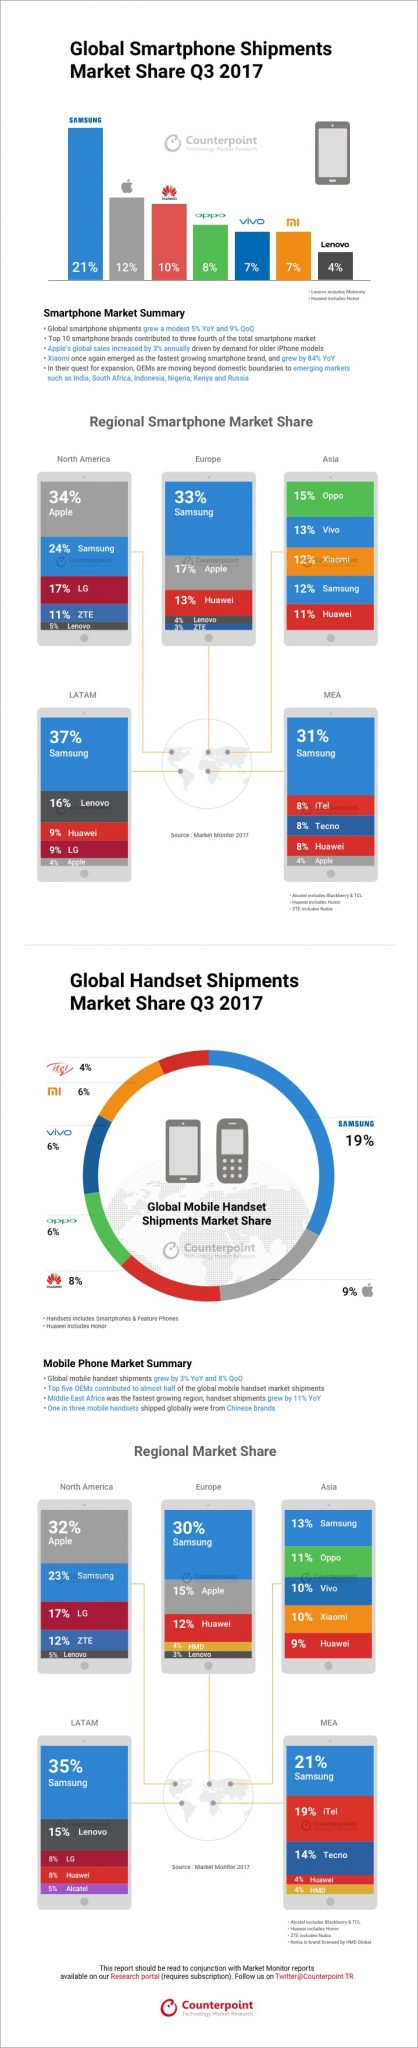 Counterpoint market share q3 2017